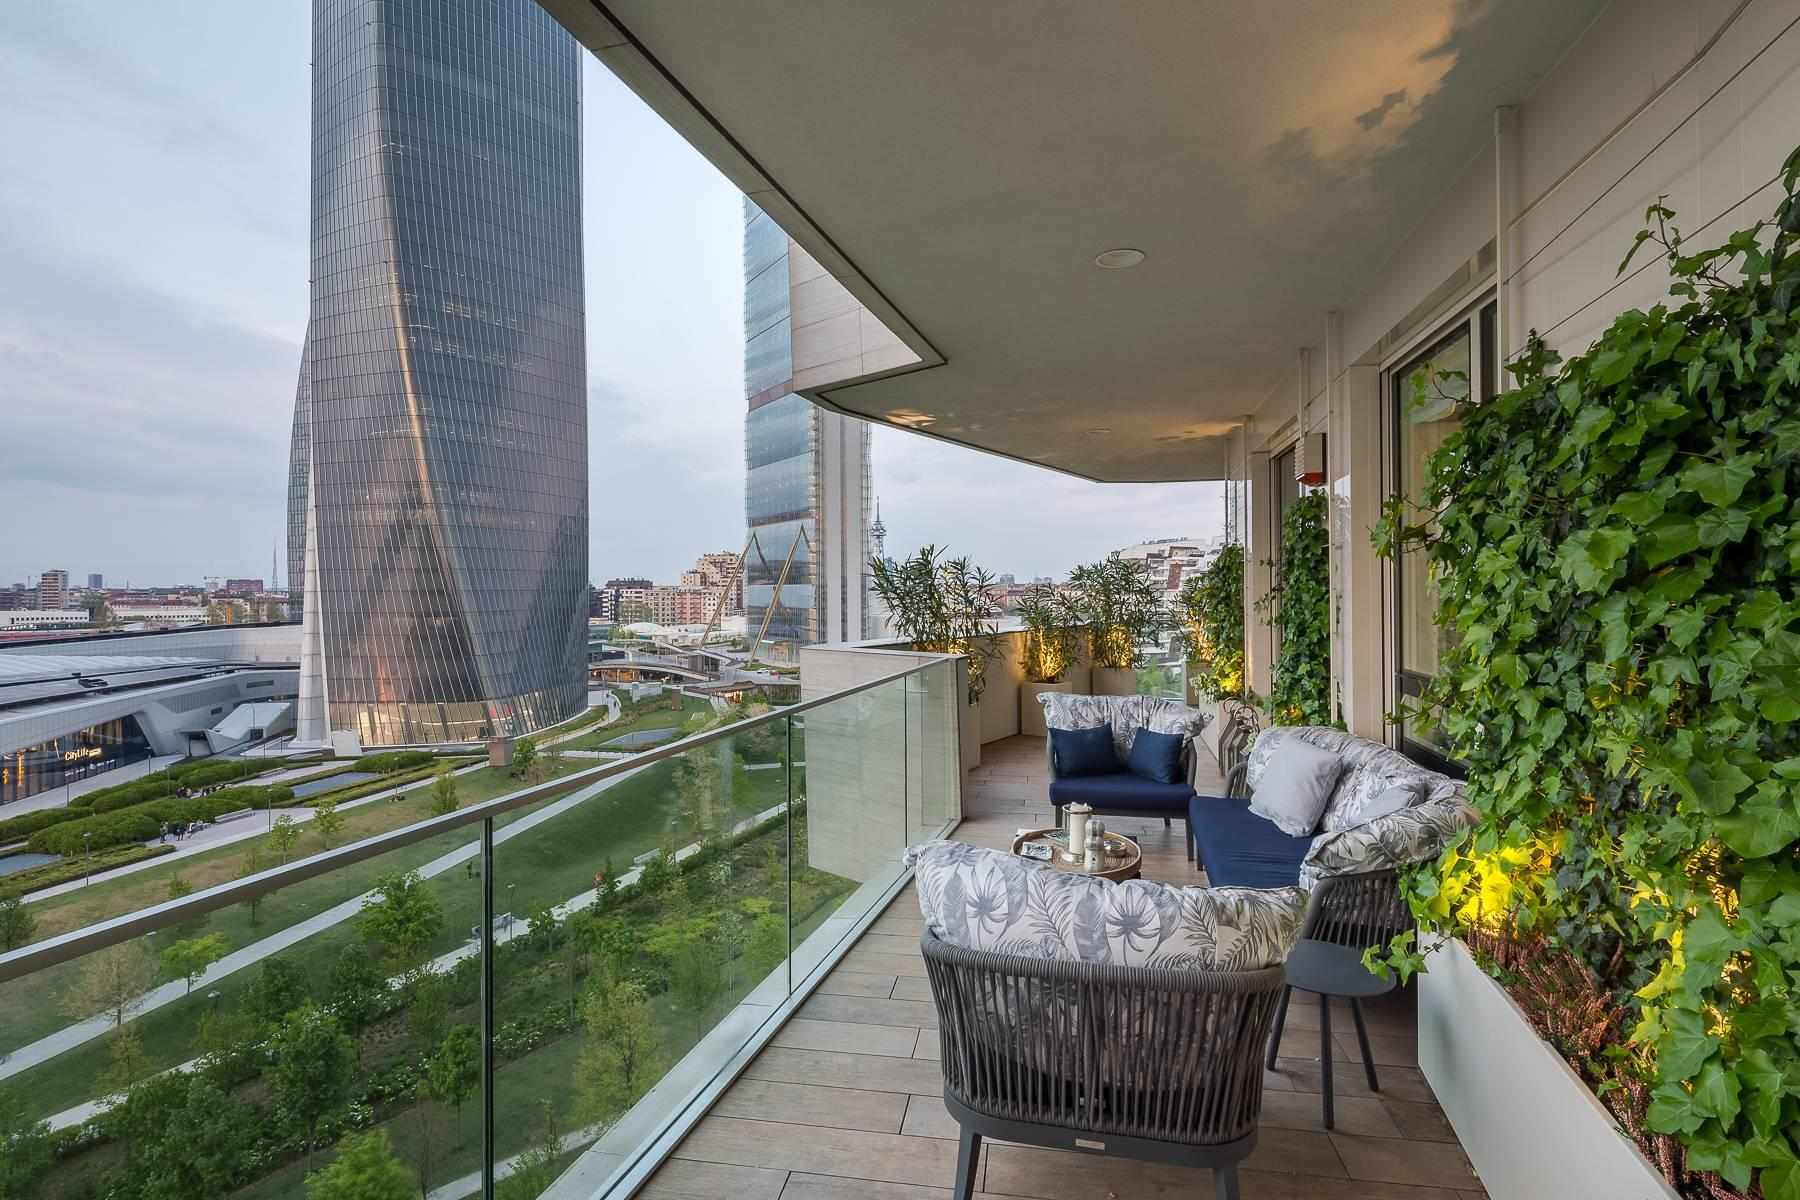 Wonderful apartment with terrace designer furniture in the City Life district - 44